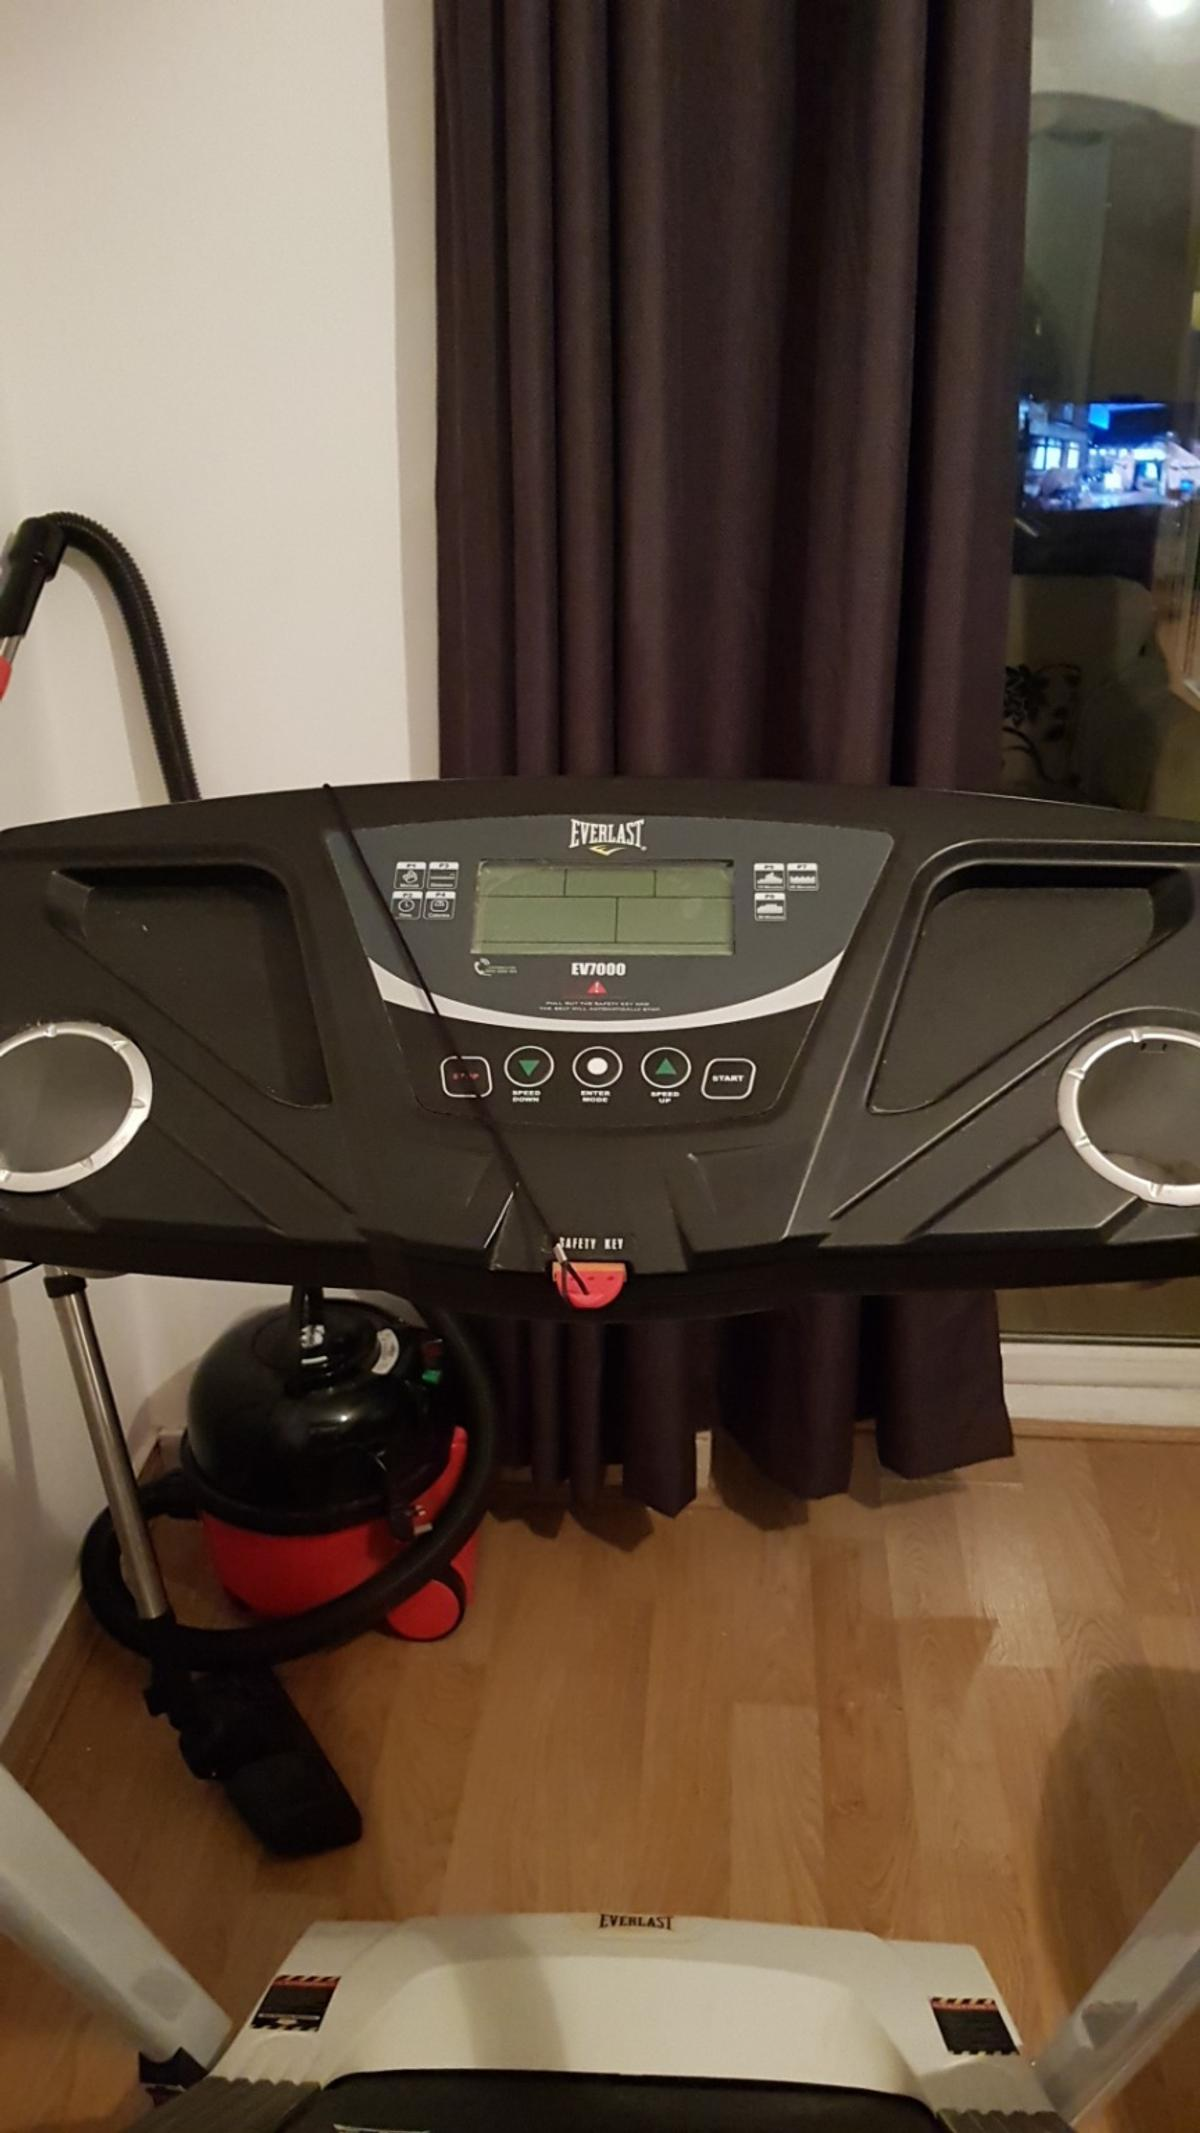 Everlast treadmill for sale excellent condition buyer must be able to collect. multiple programs for a fantastic workout.